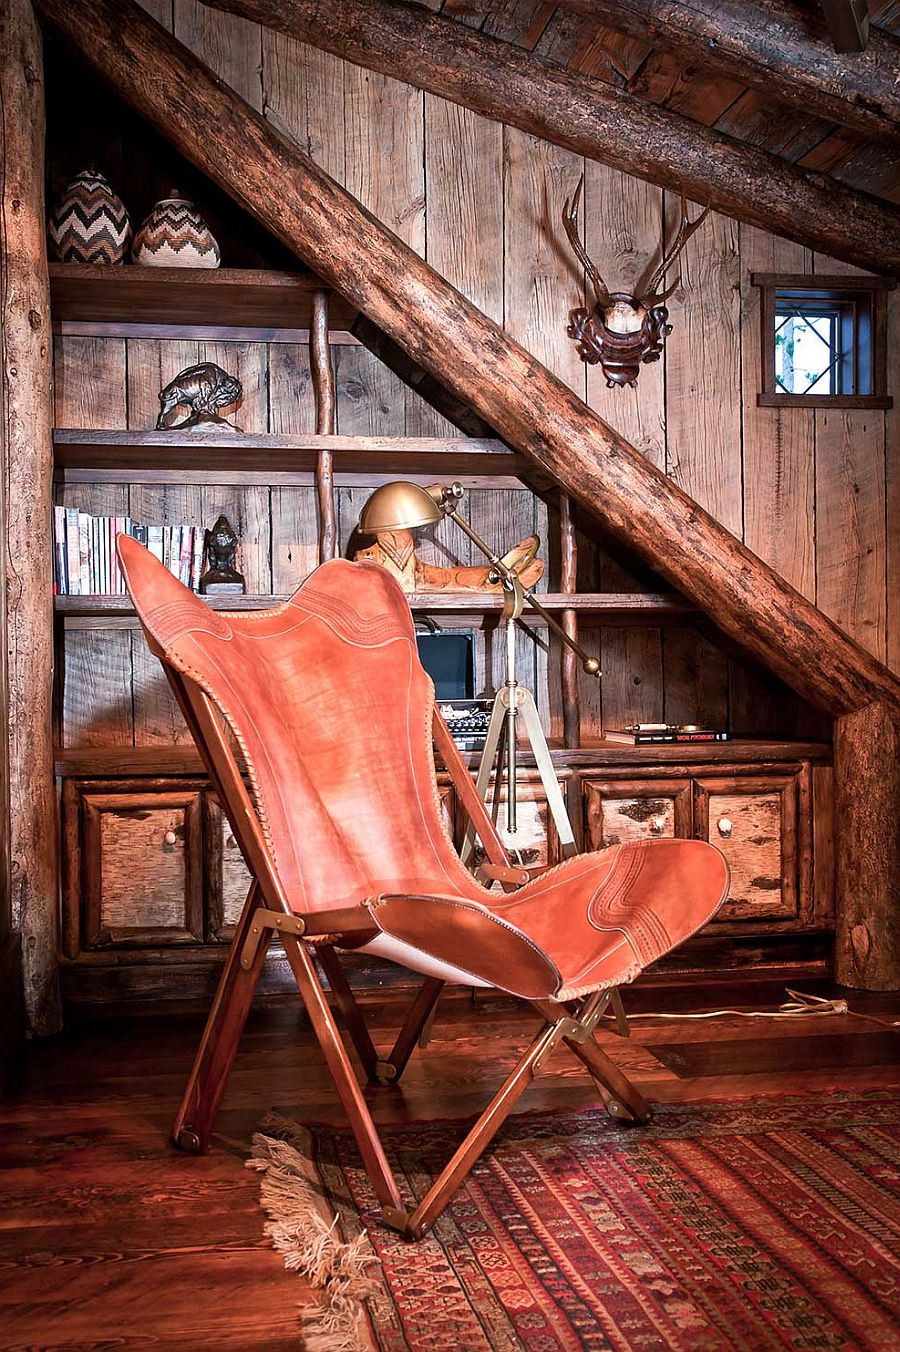 comfortable reading chair small space target chairs folding dancing hearts: picture-perfect hillside escape in montana!